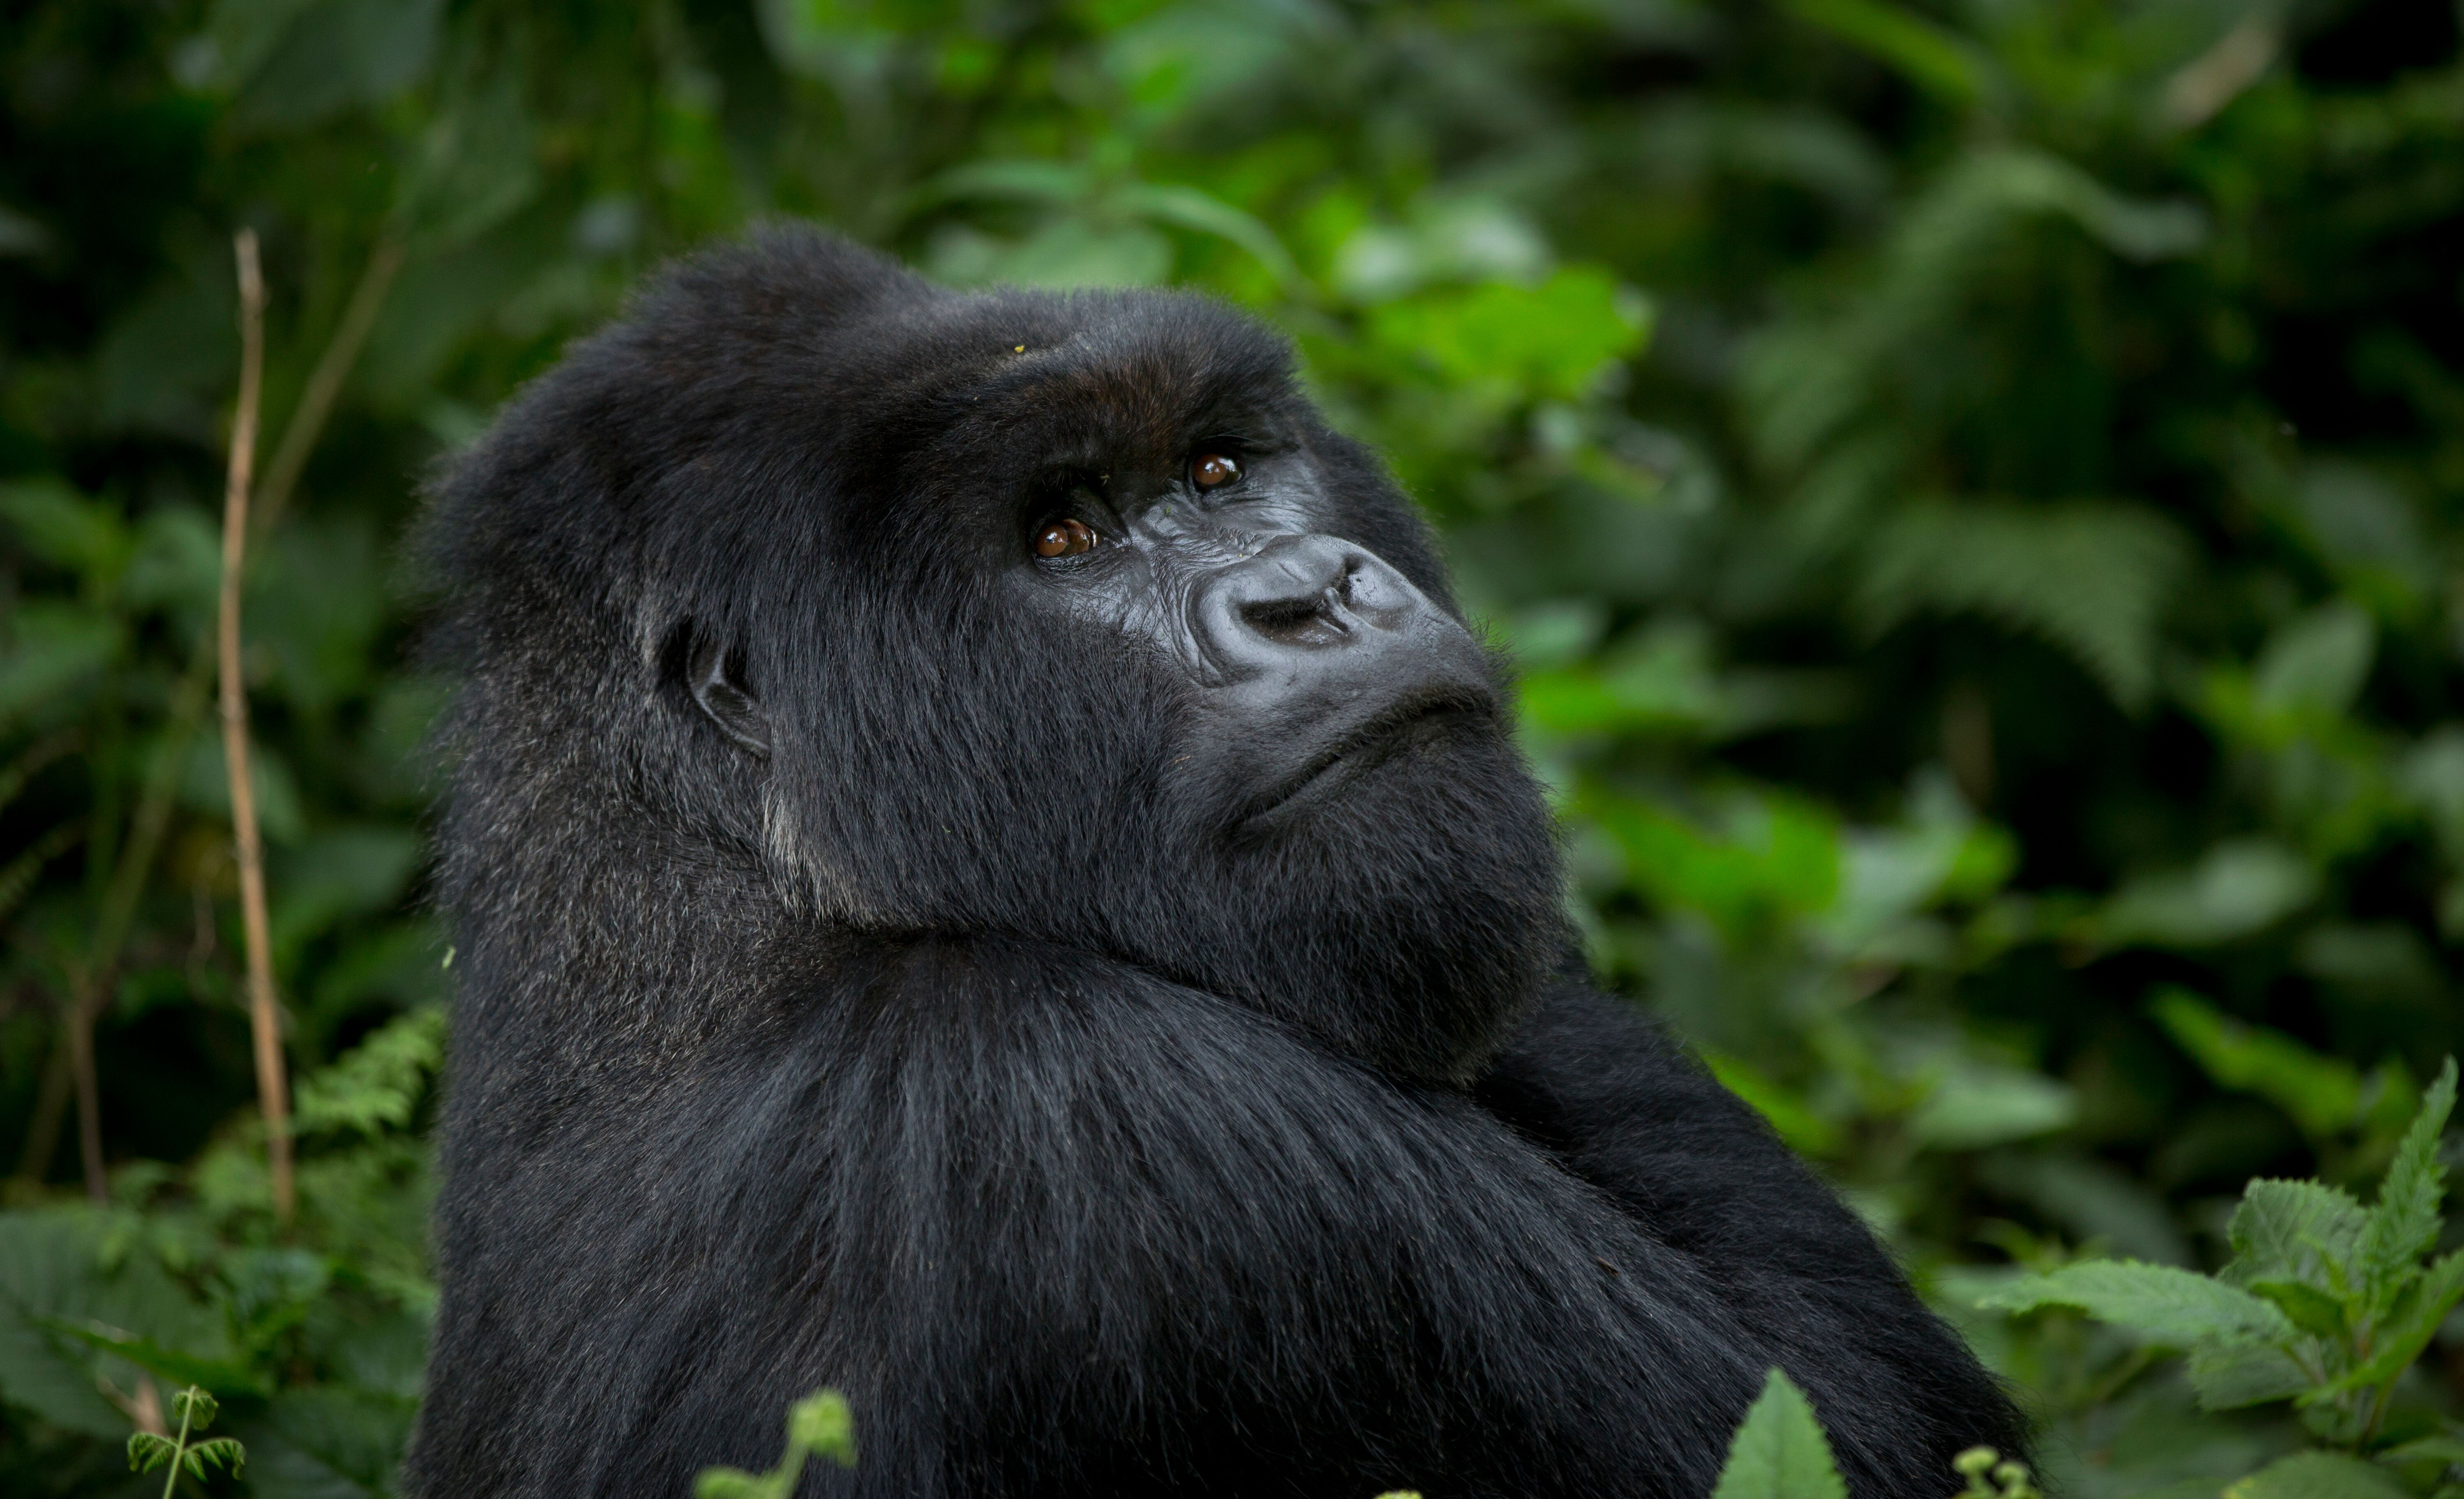 FILE - In this Friday, Sept. 4, 2015 file photo, a male silverback mountain gorilla from the family of mountain gorillas name